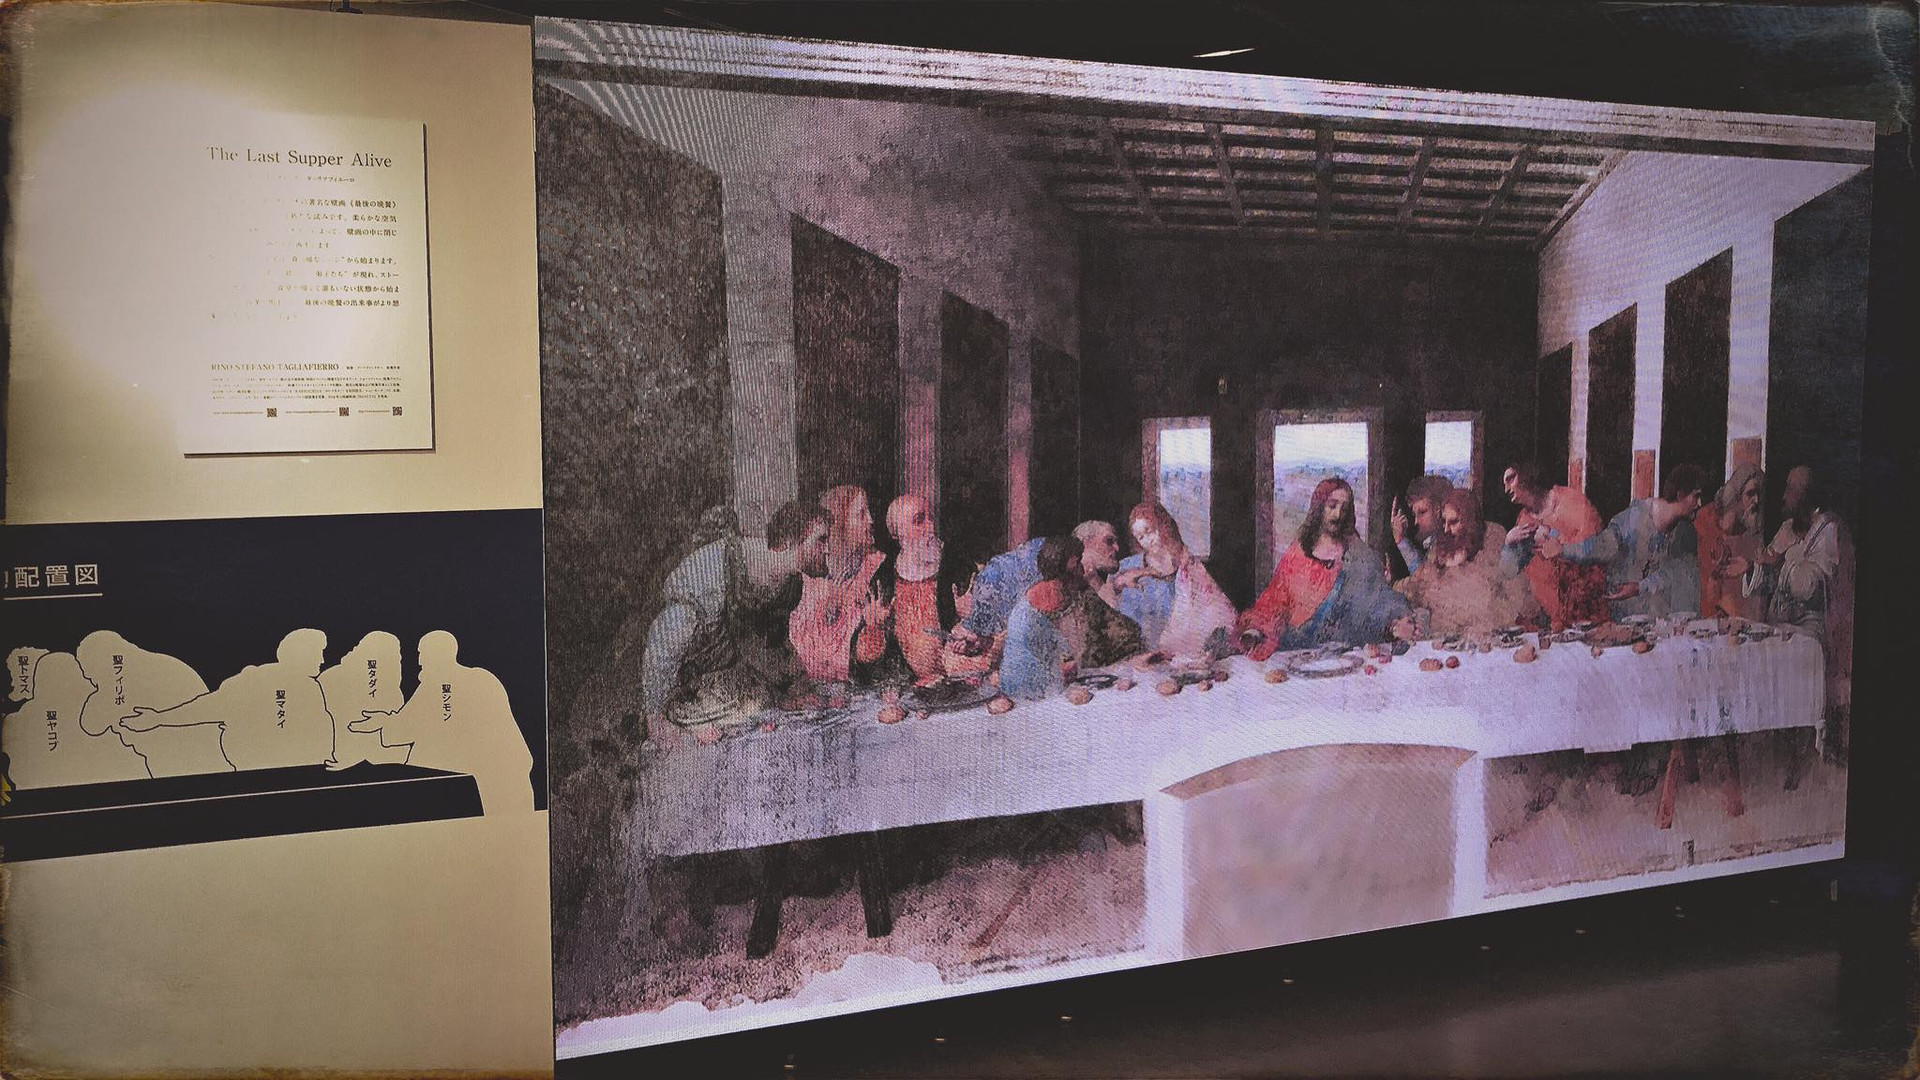 The Last Supper Alive